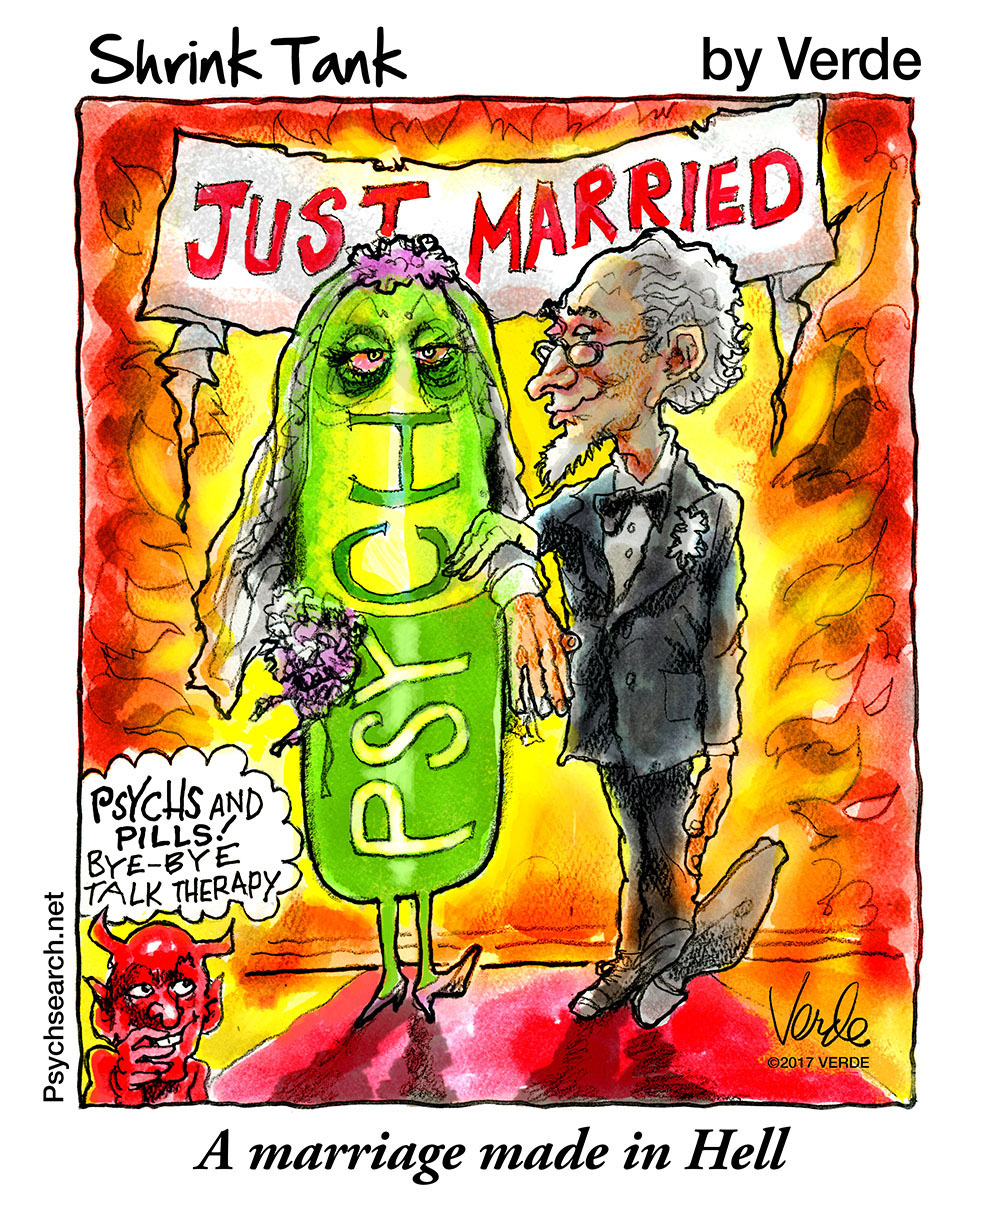 MARRIAGE MADE IN HELL